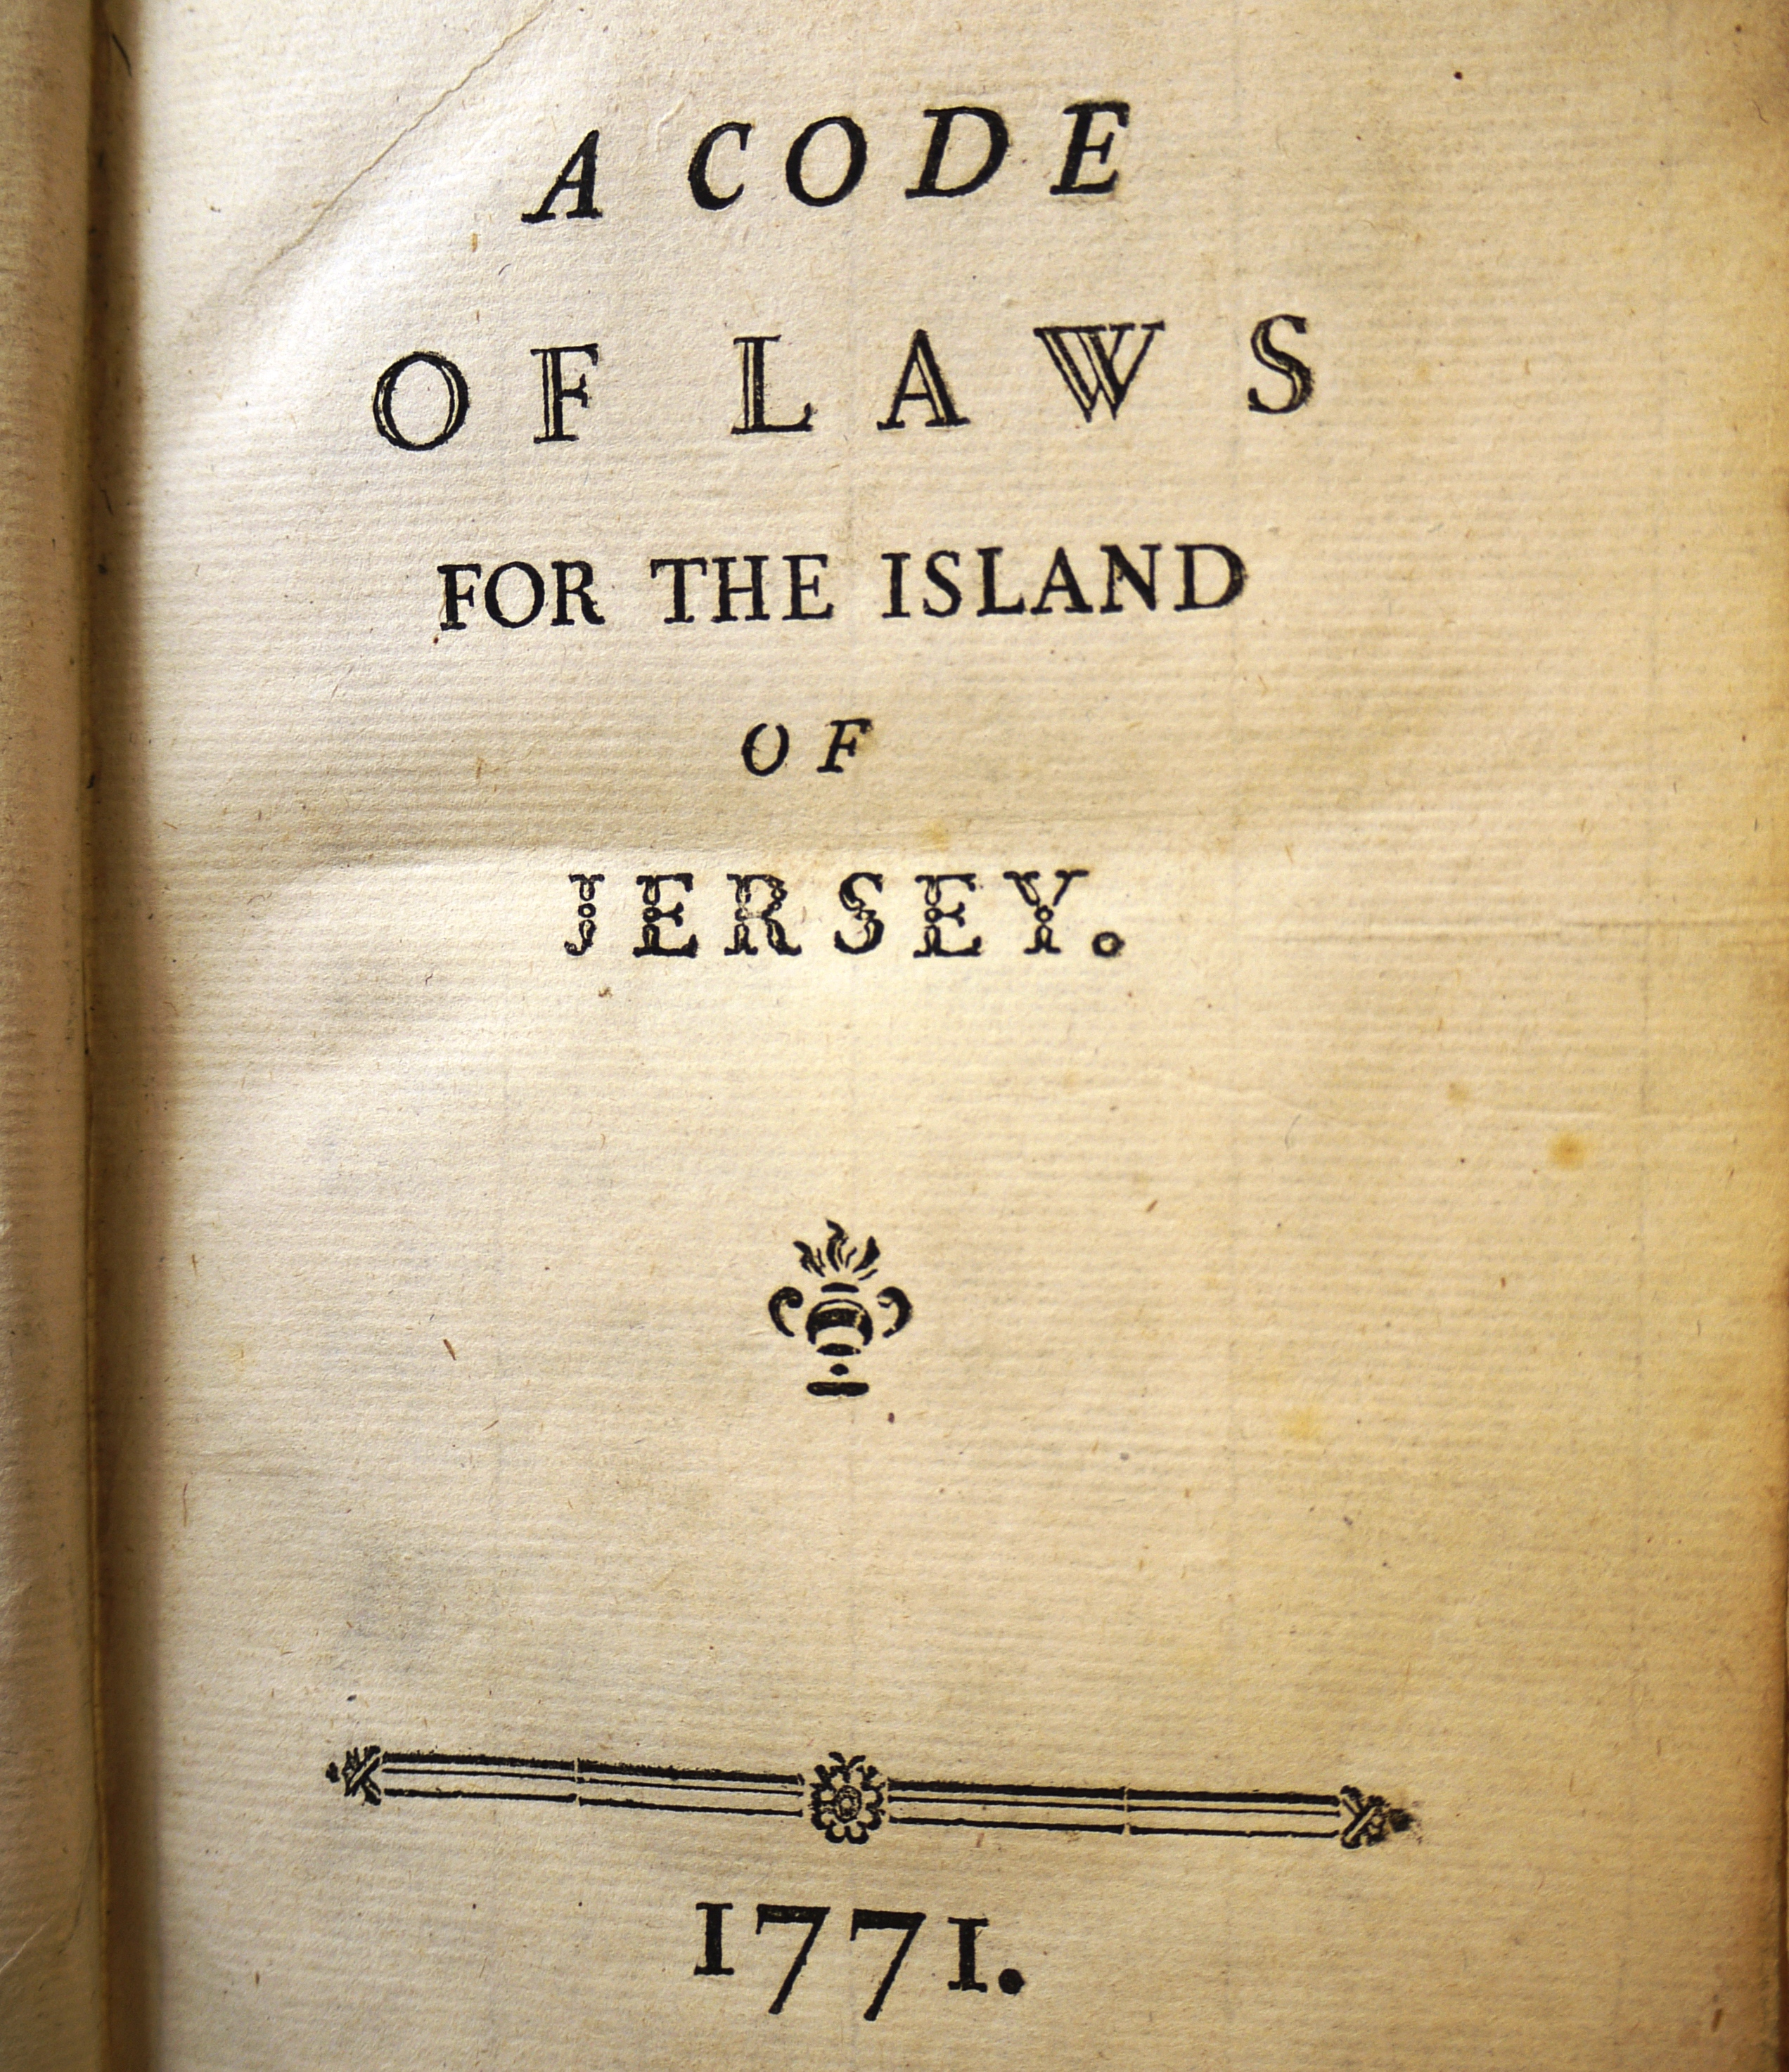 File:1771 Code of Laws for the Island of Jersey.jpg